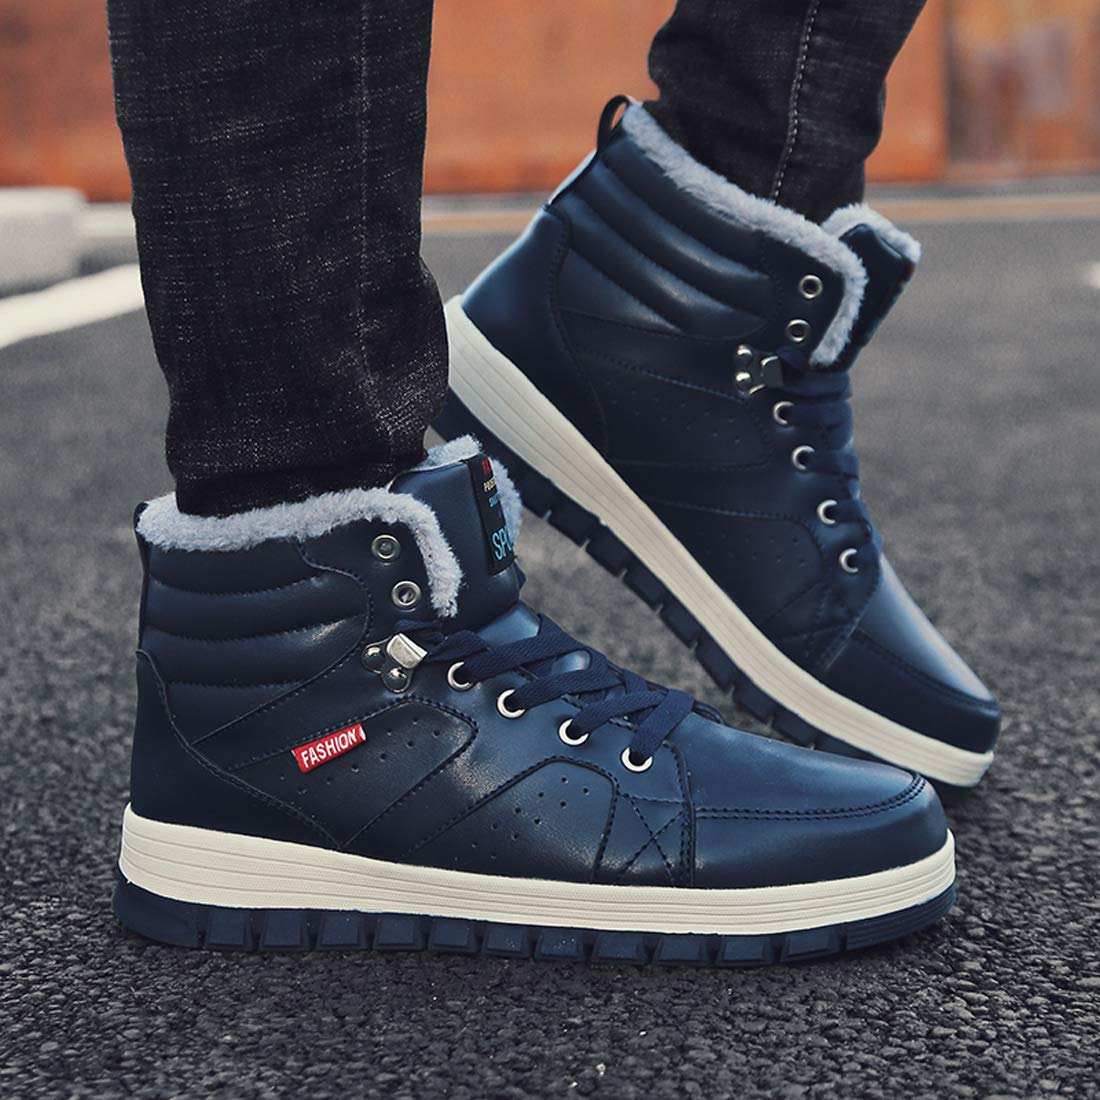 Ceyue Mens Leather Snow Boots Lace up Ankle Sneakers High Top Winter Warm Walking Shoes with Fur Lining(Blue 43) by Ceyue (Image #5)